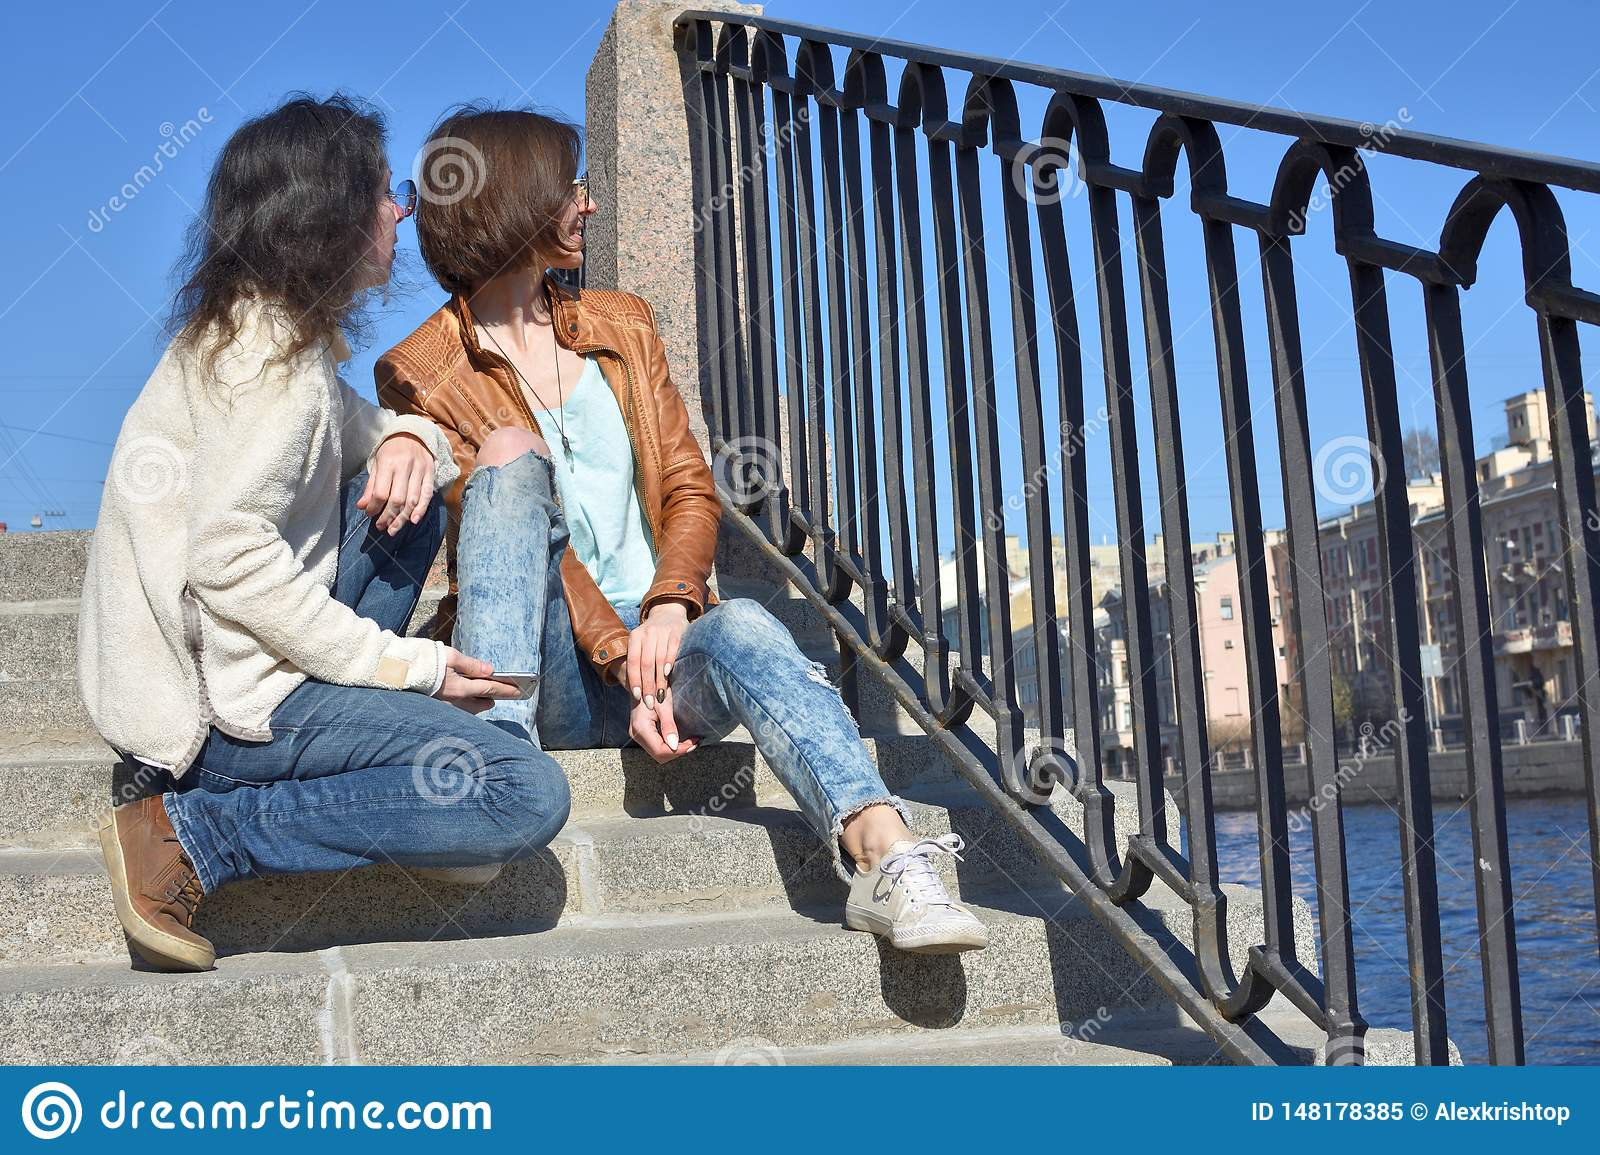 Young ladies tourists sitting together on stair at Fontanka river embankment in Saint Petersburg Russia watching tourist boats on